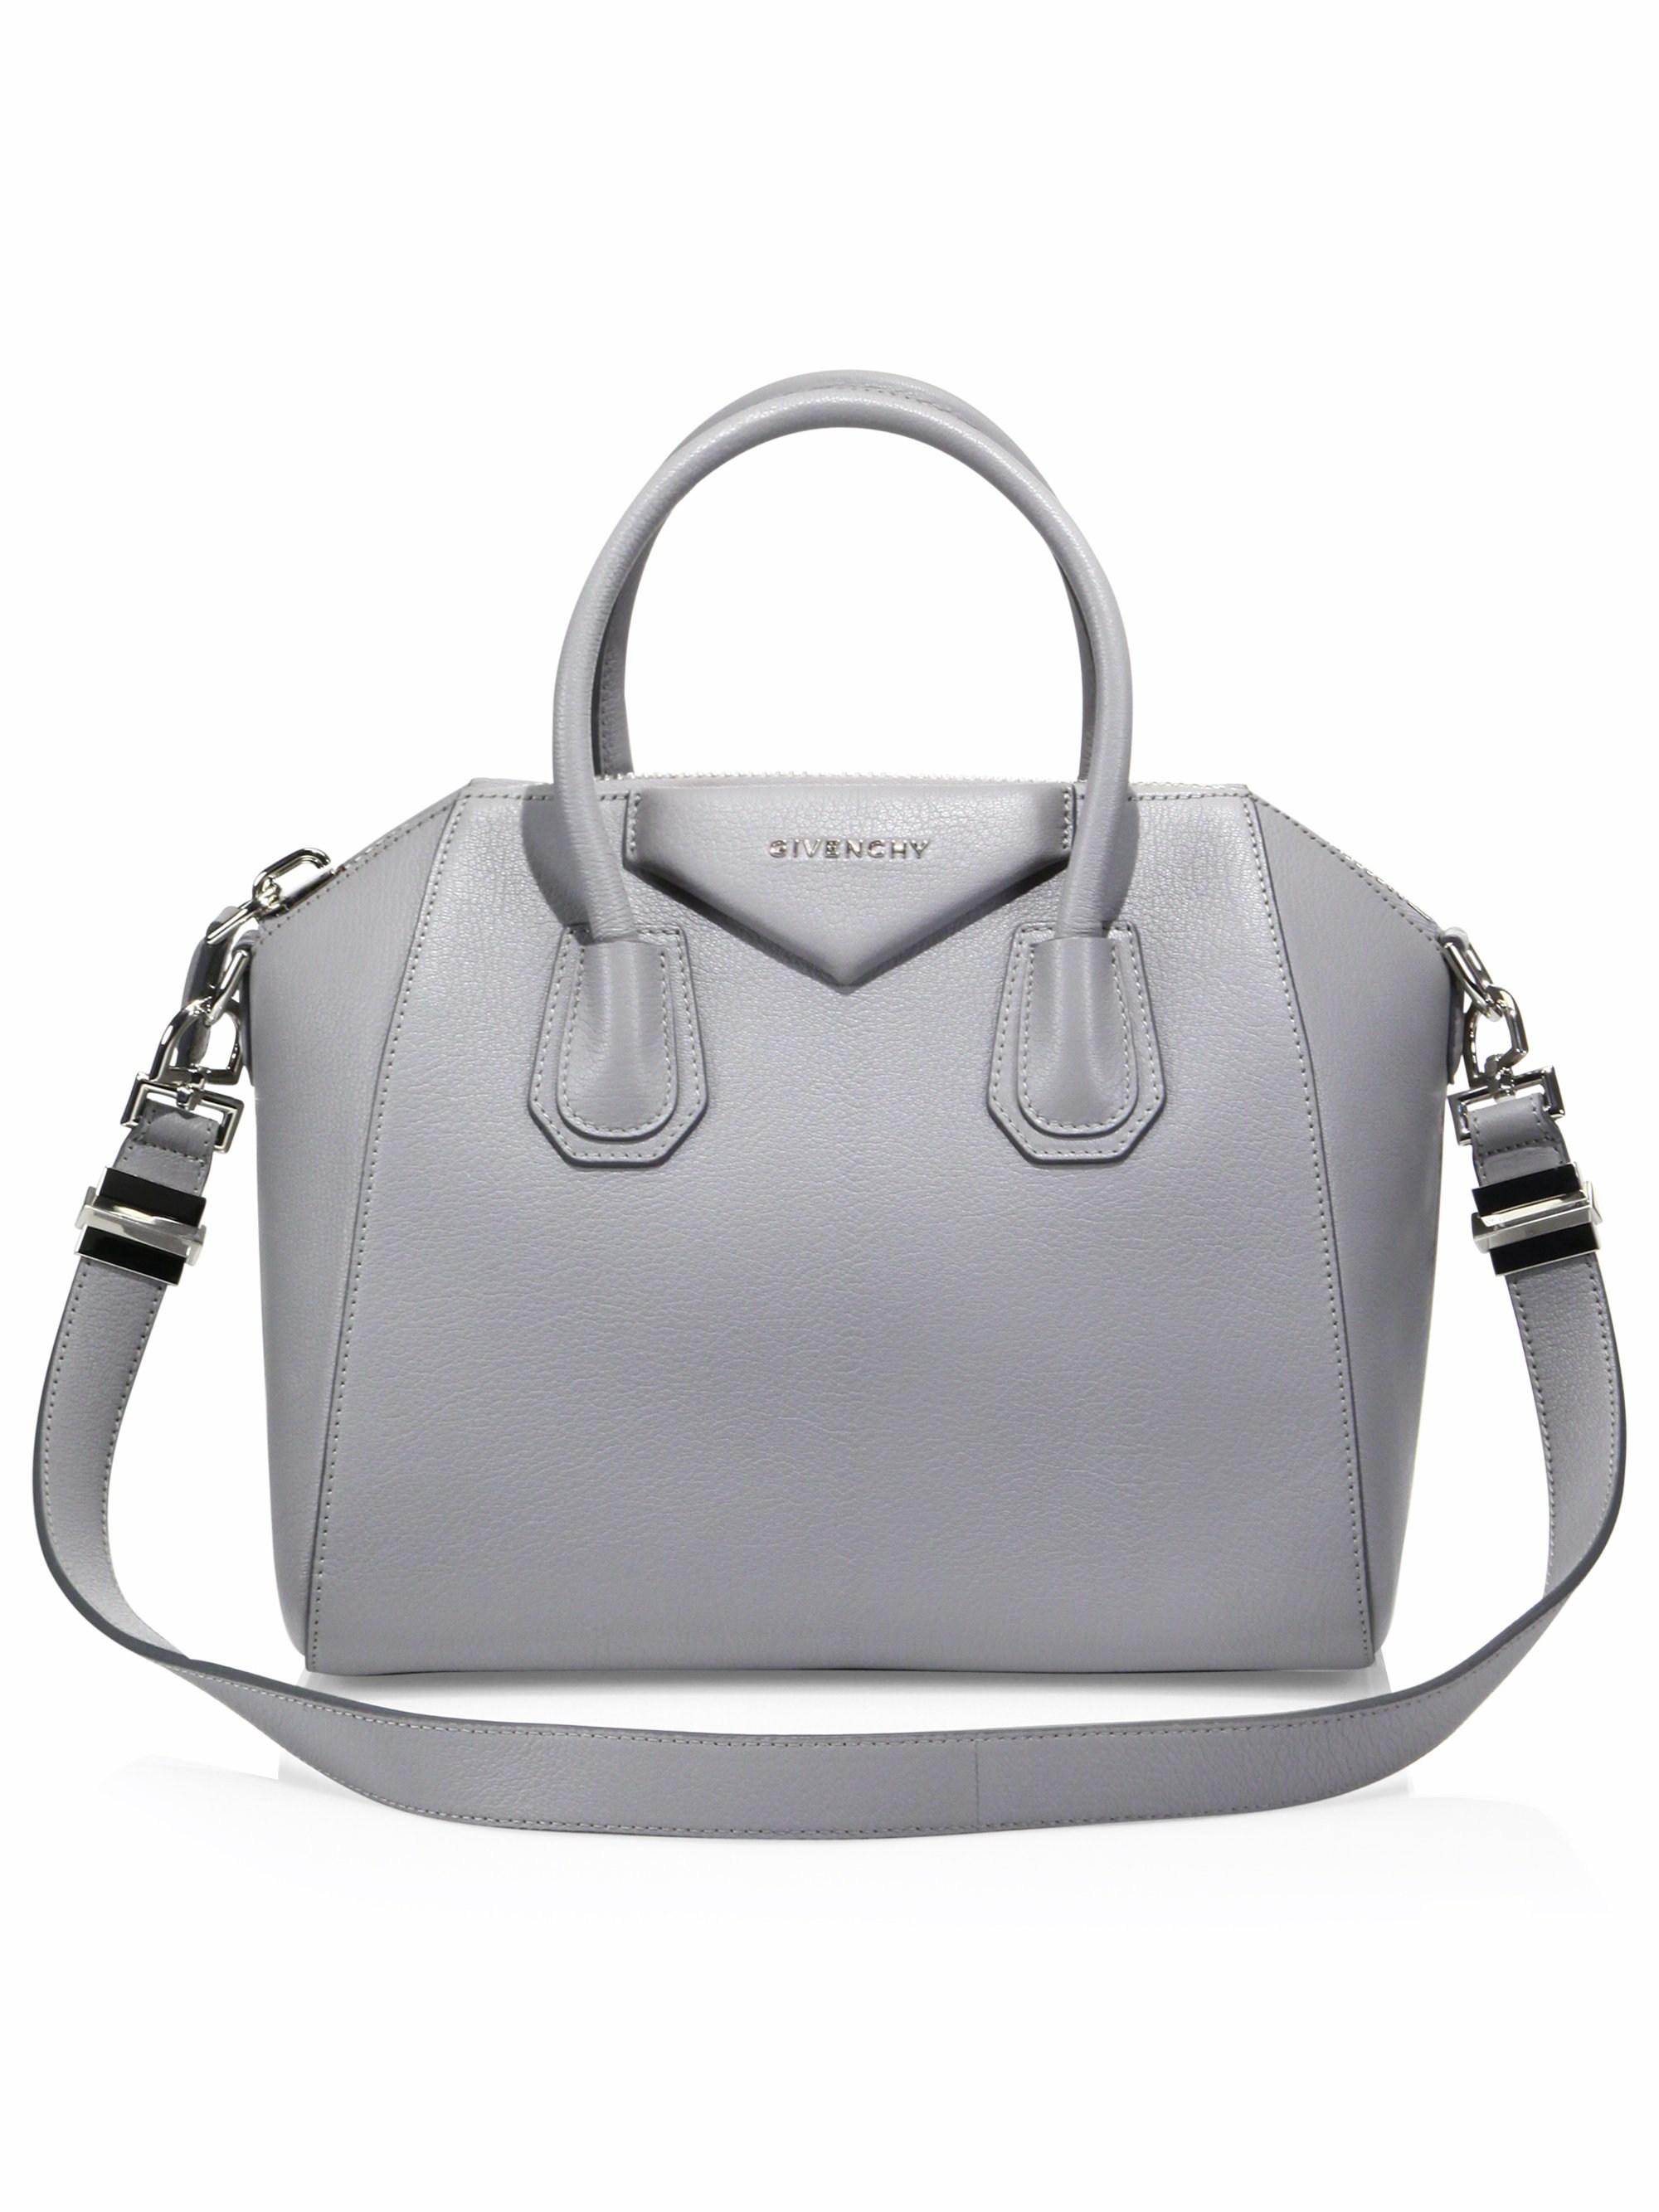 4184d277c1 Givenchy - Gray Women s Antigona Small Leather Satchel - Bright Red - Lyst.  View fullscreen